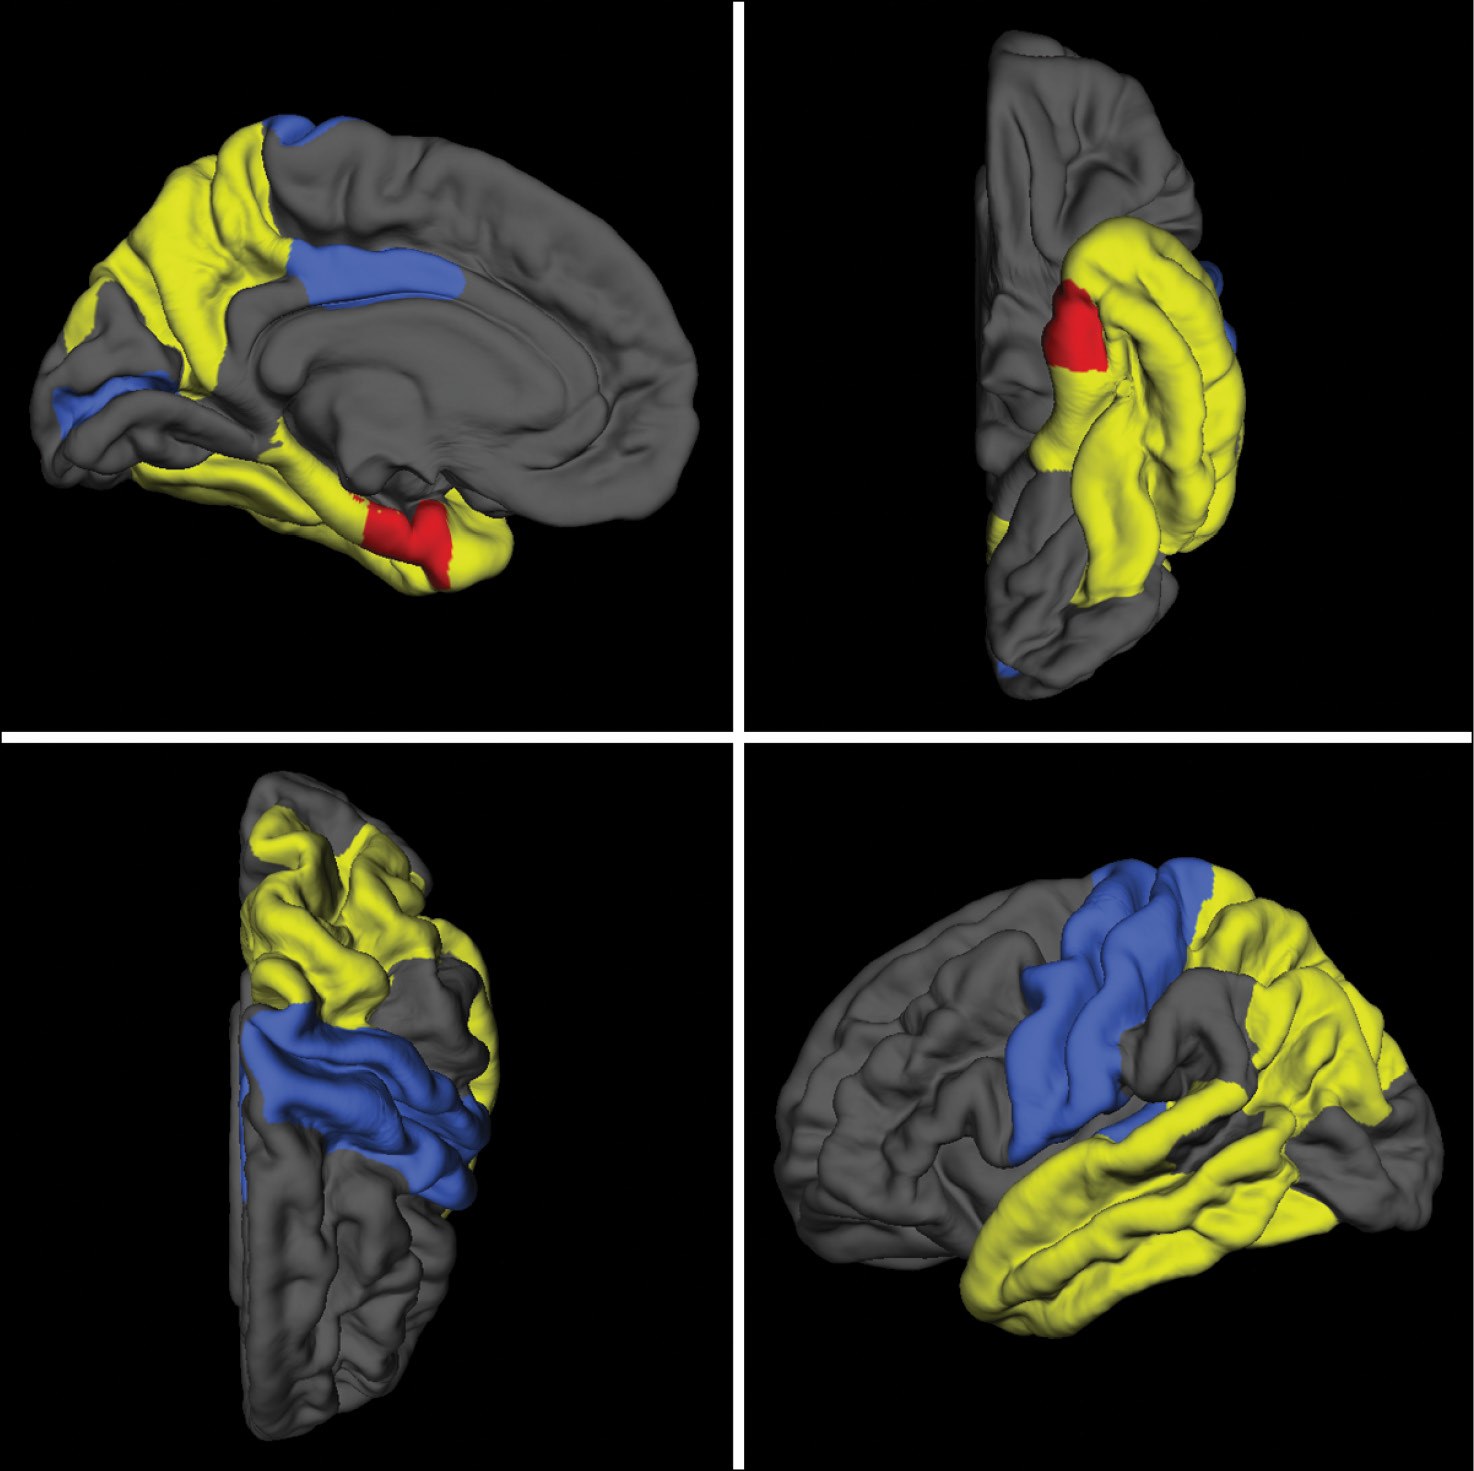 Medial, inferior, superior and lateral images of a 3D FreeSurfer reference brain model